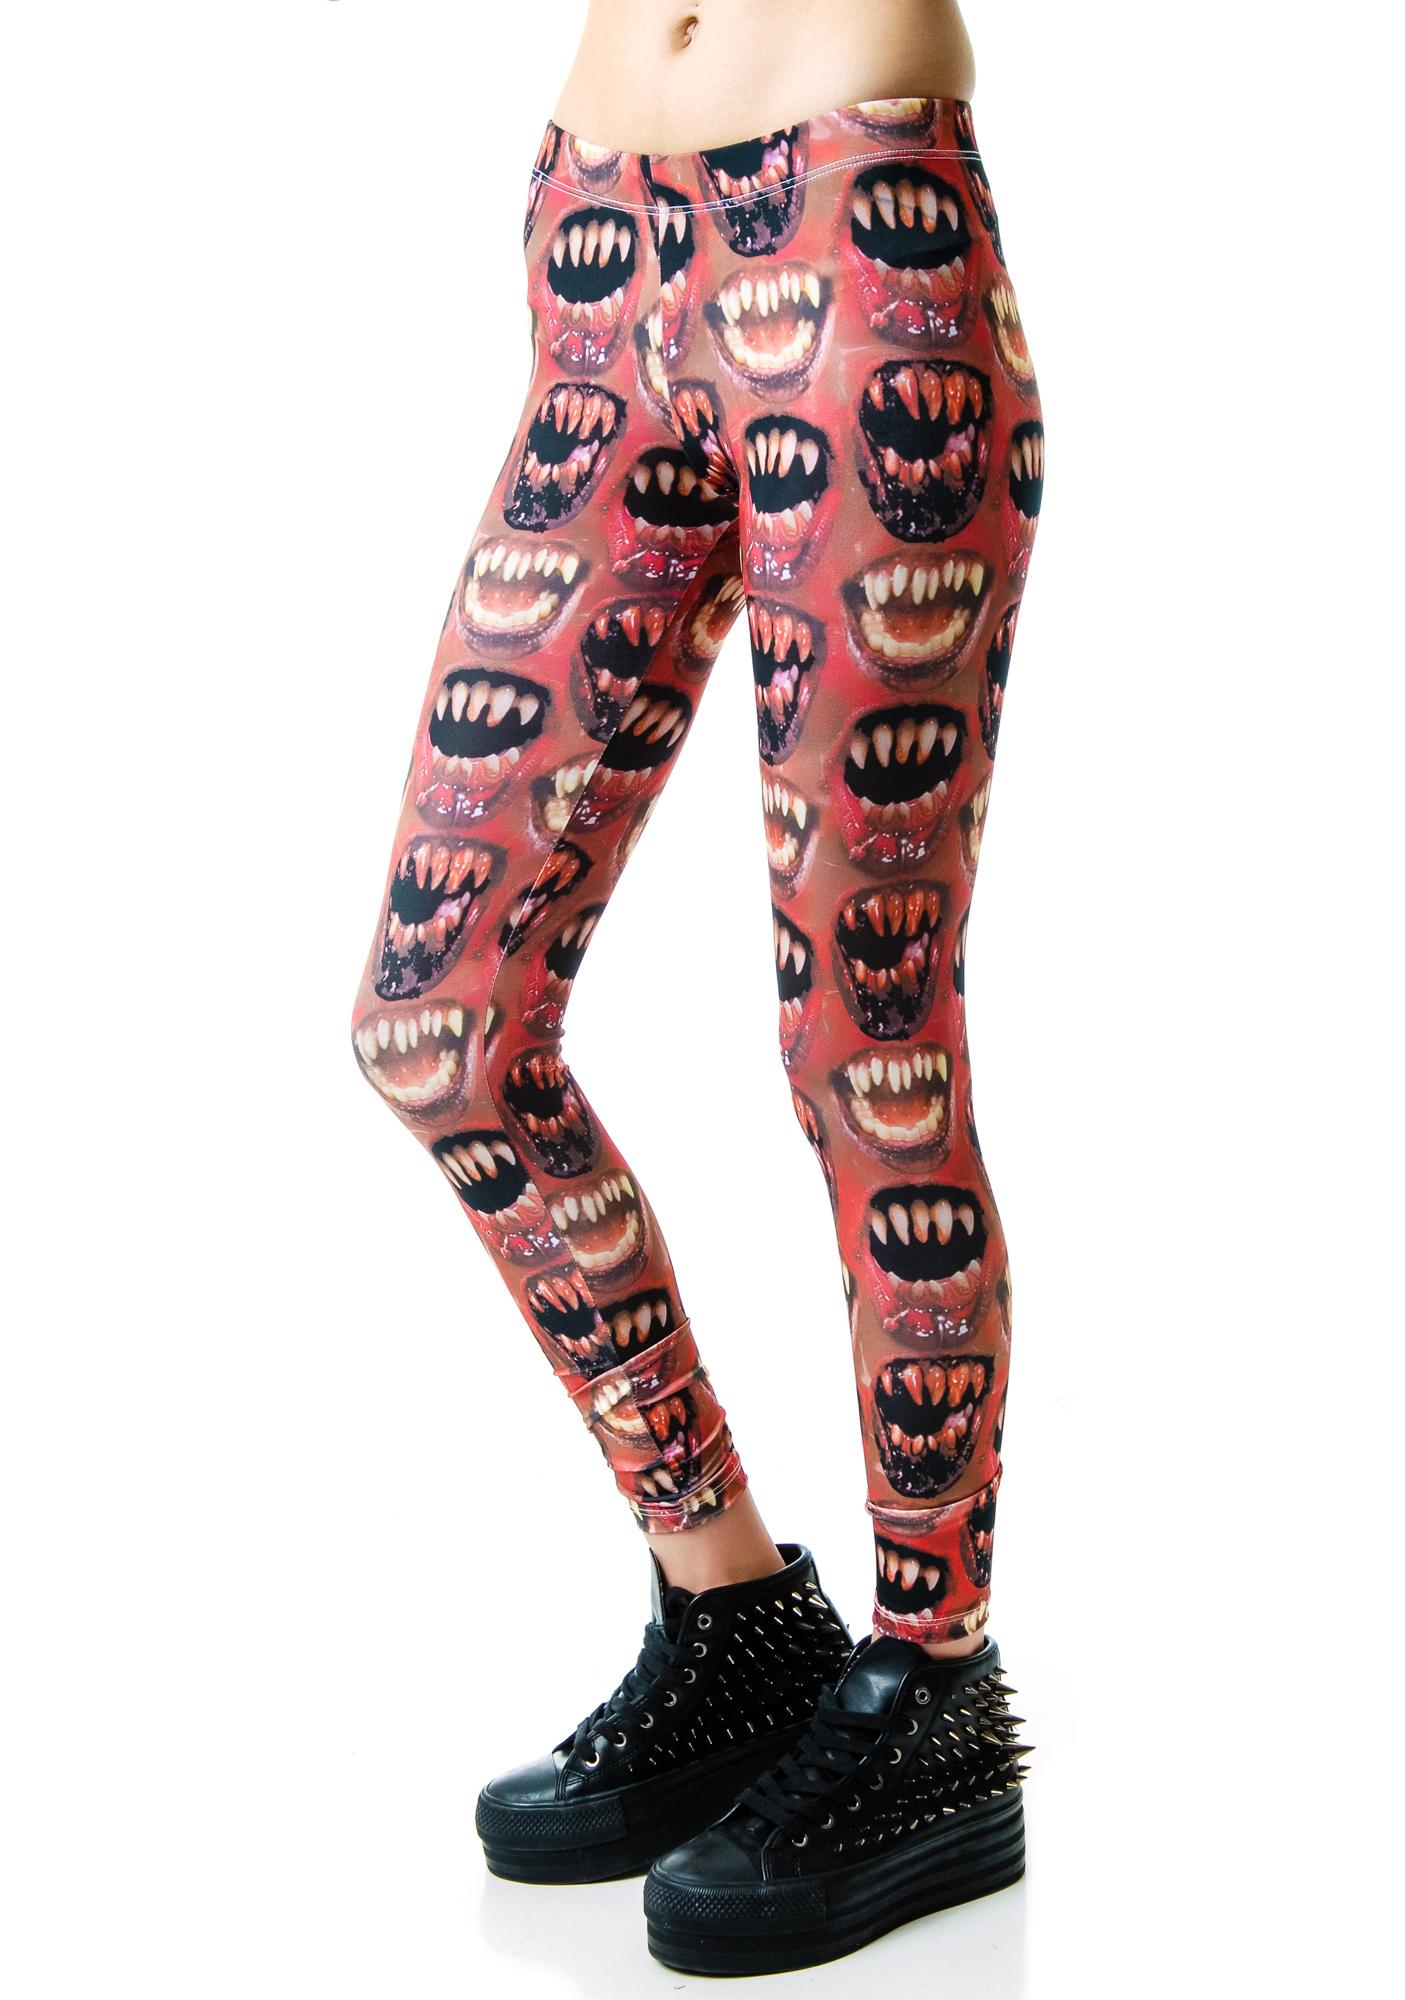 Kreepsville 666 Monster Mouth Leggings